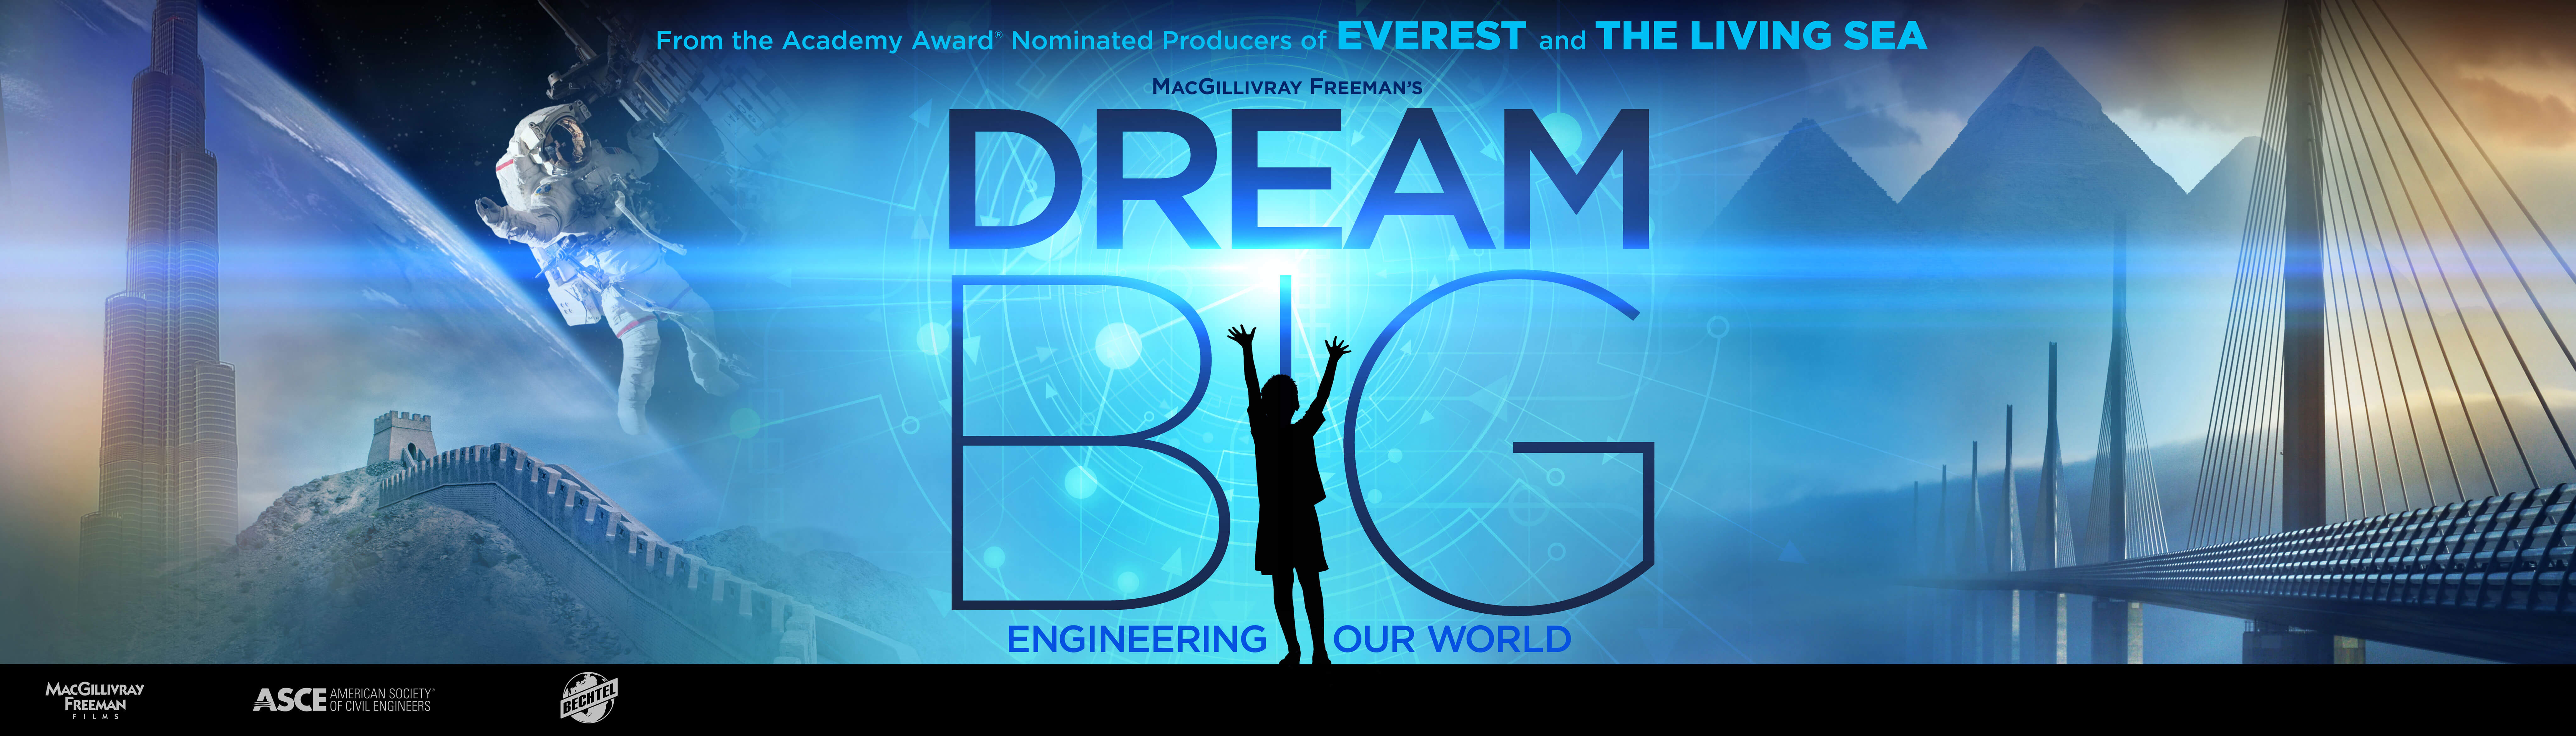 dream big promotional banner